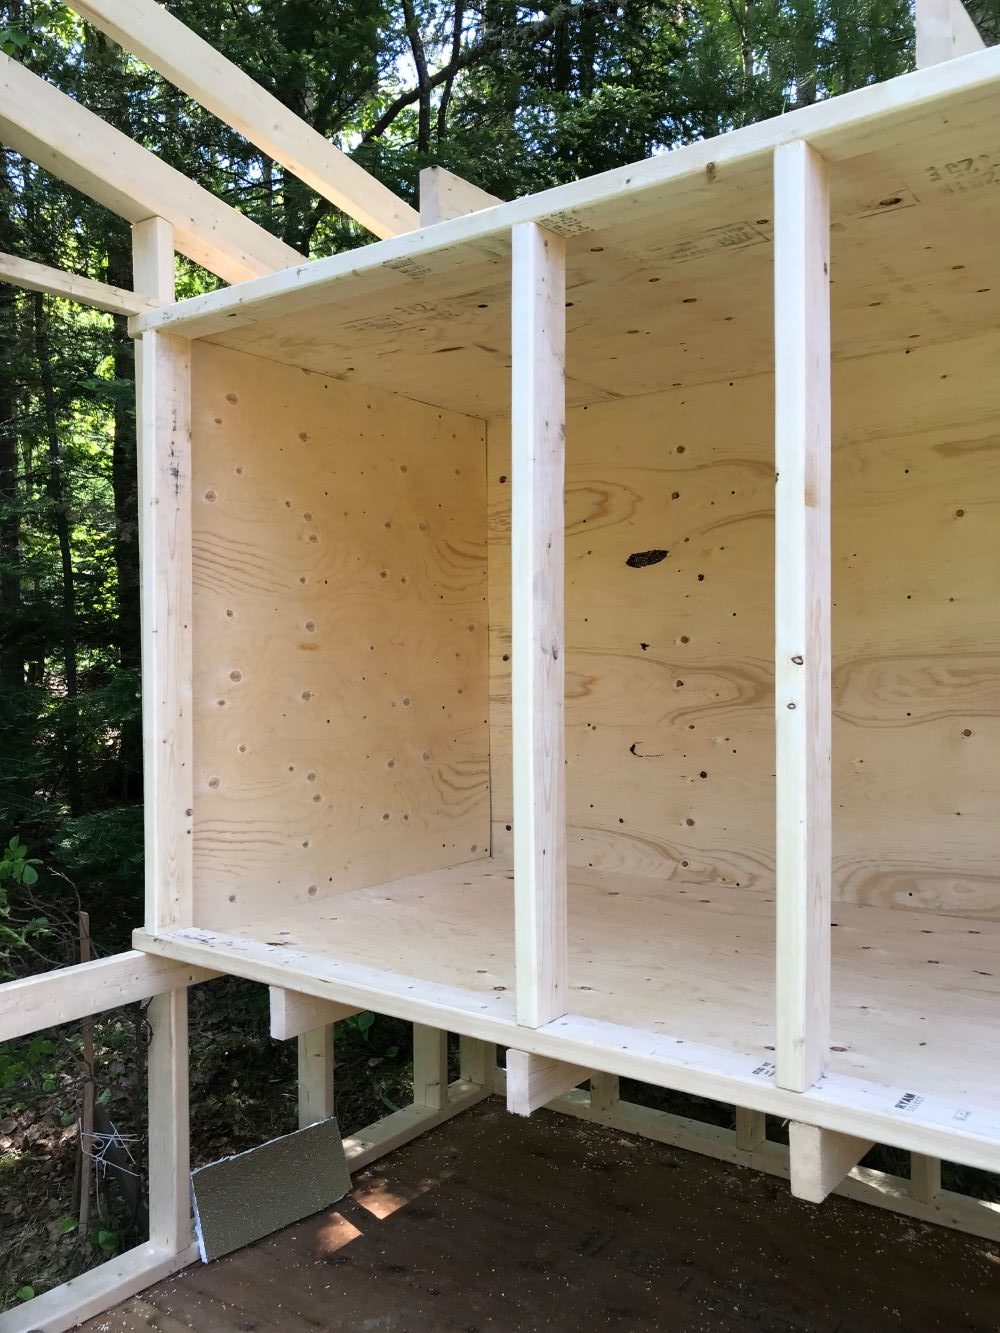 How to Construct a Chicken Coop